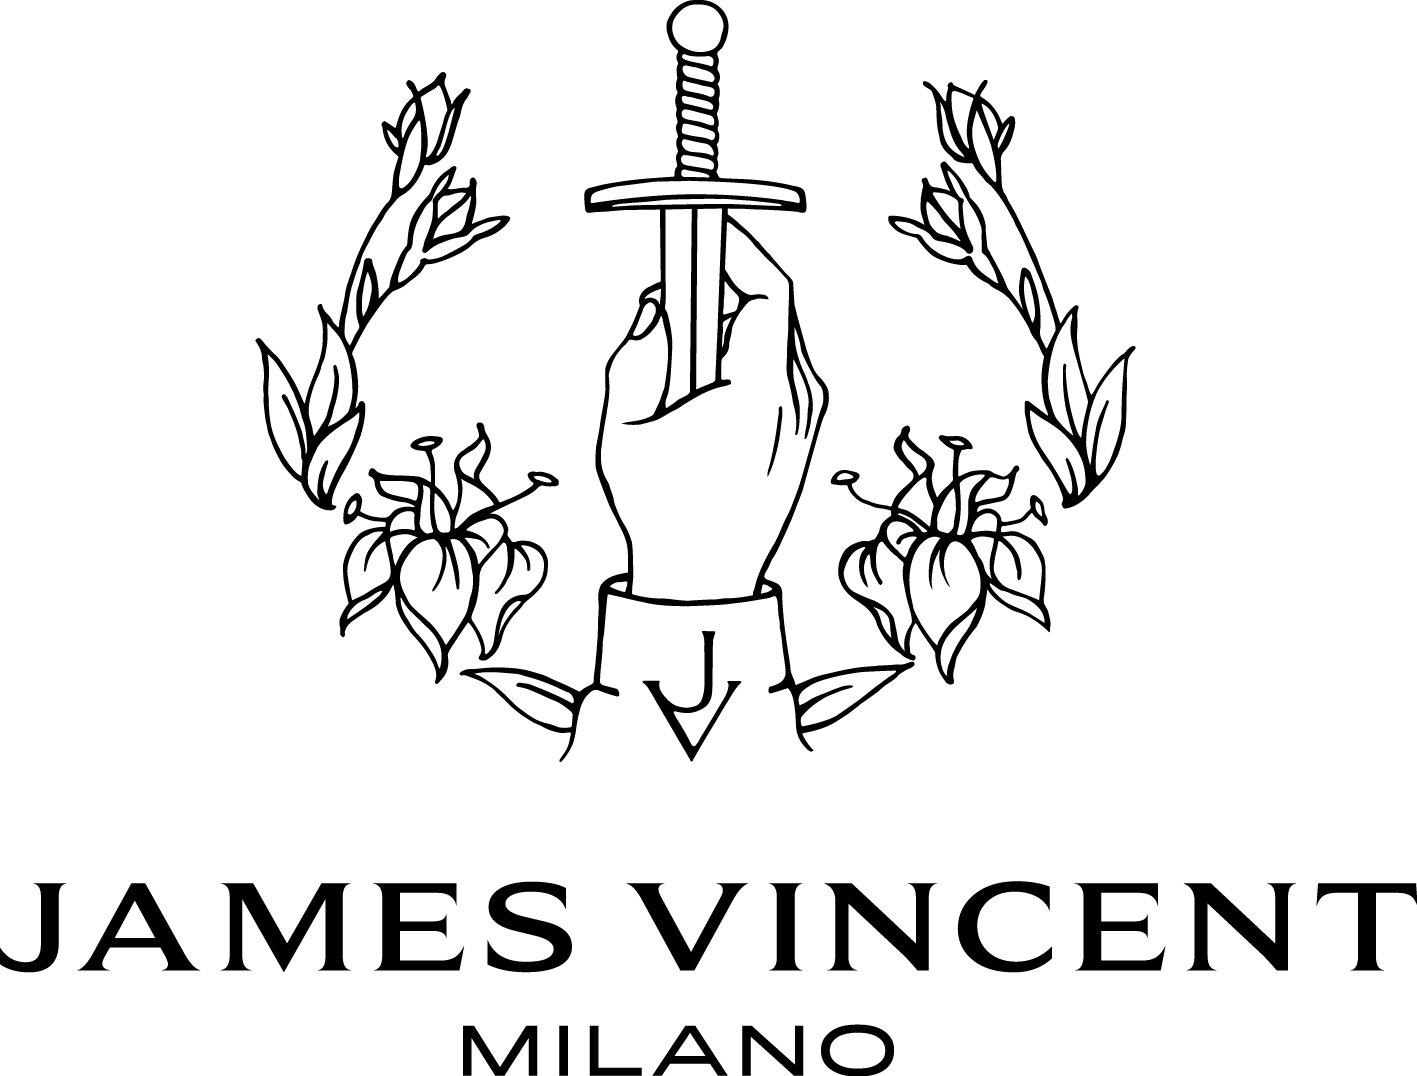 James Vincent Milano